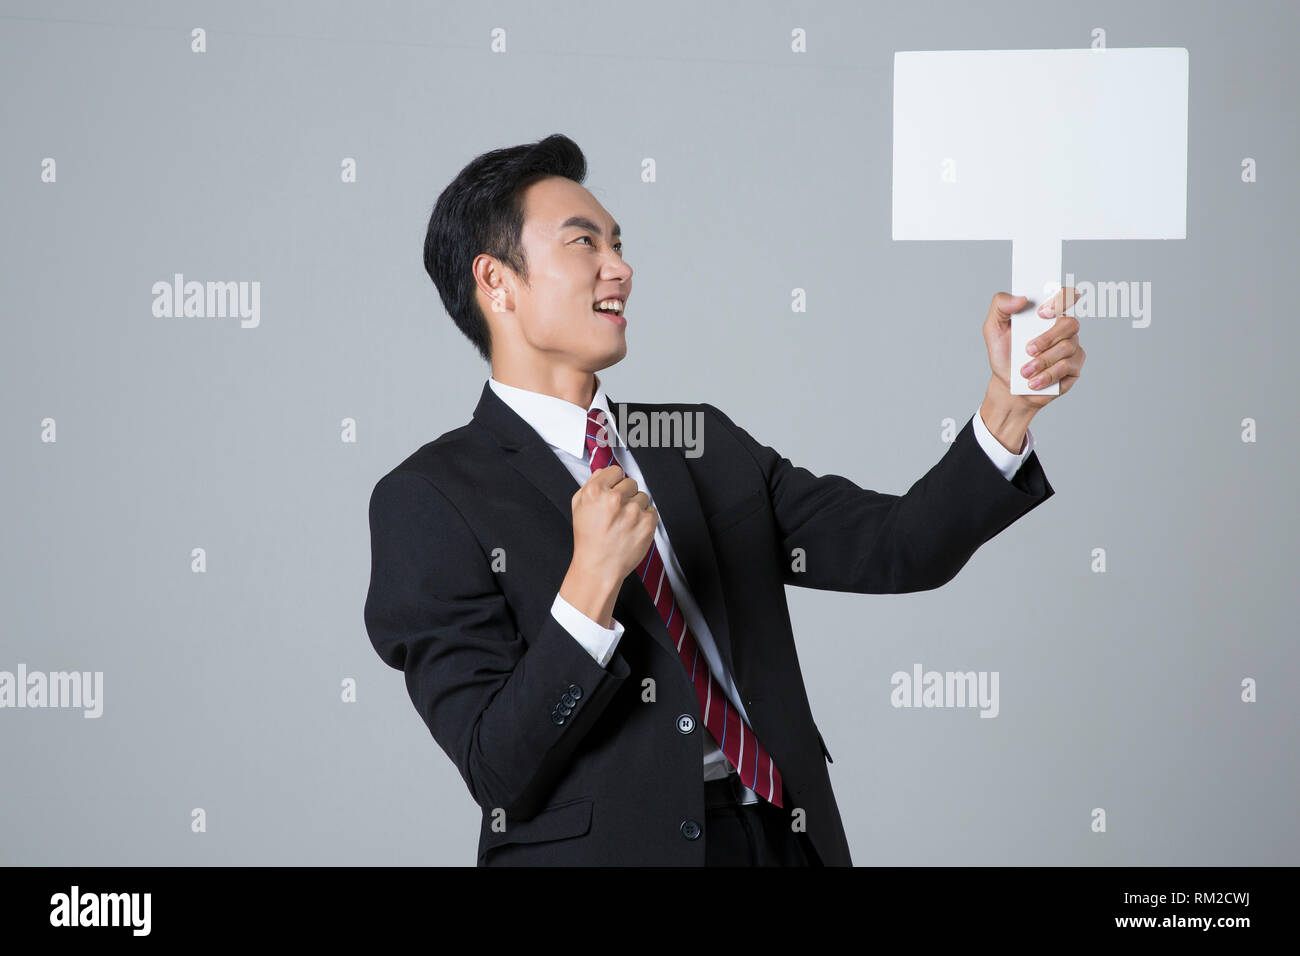 Young businessman concept photo. 151 - Stock Image